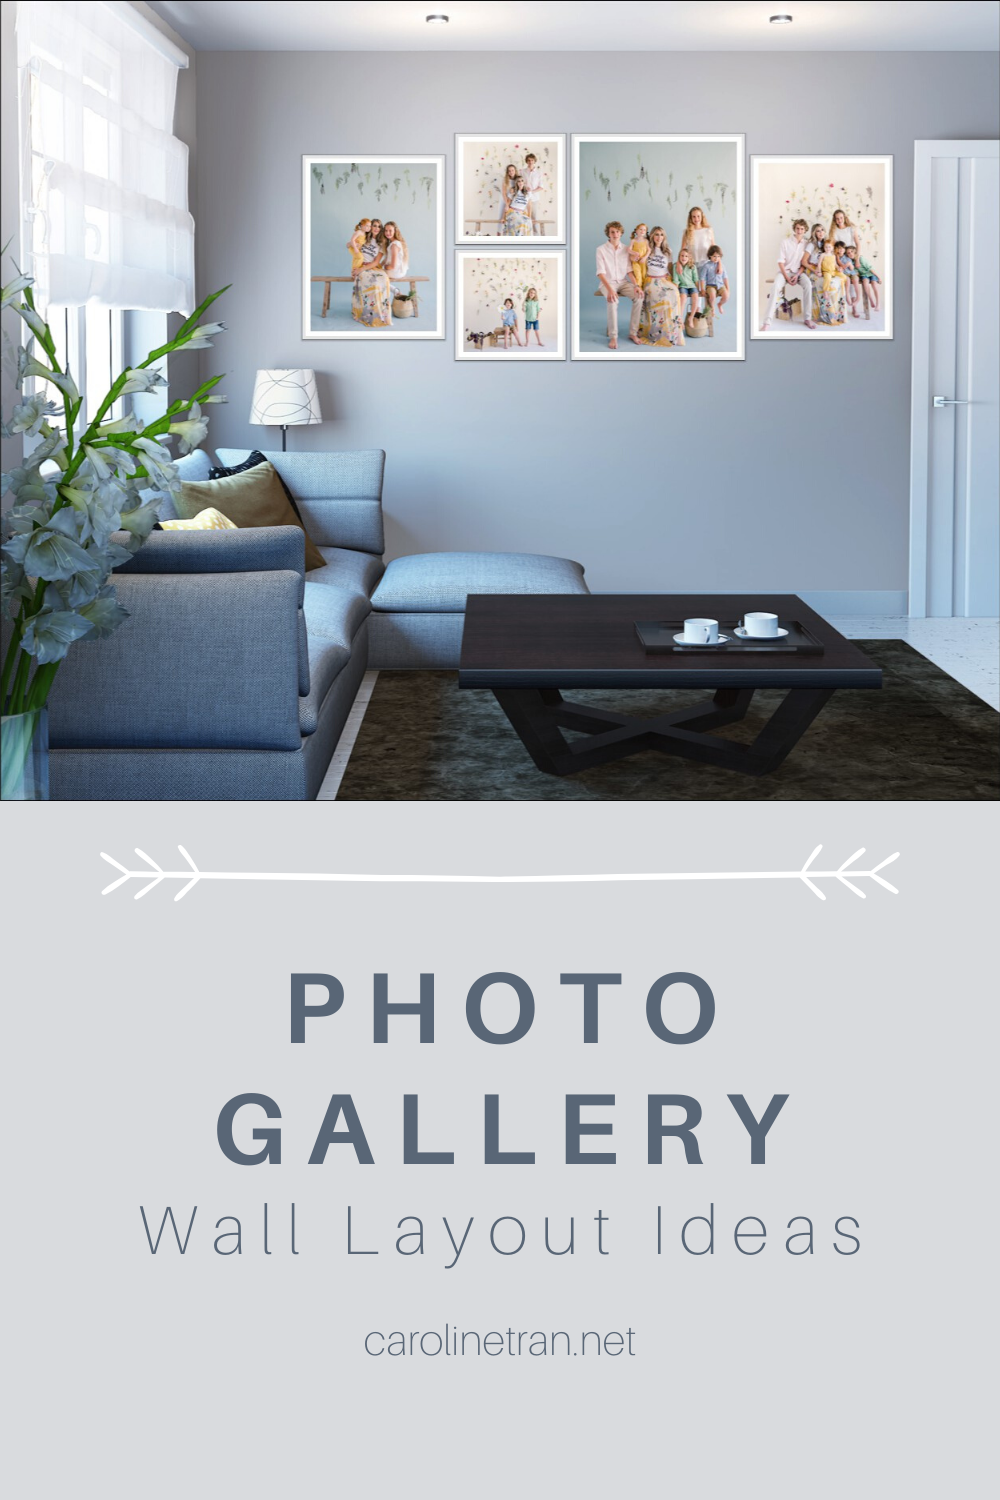 Living room with photo gallery wall